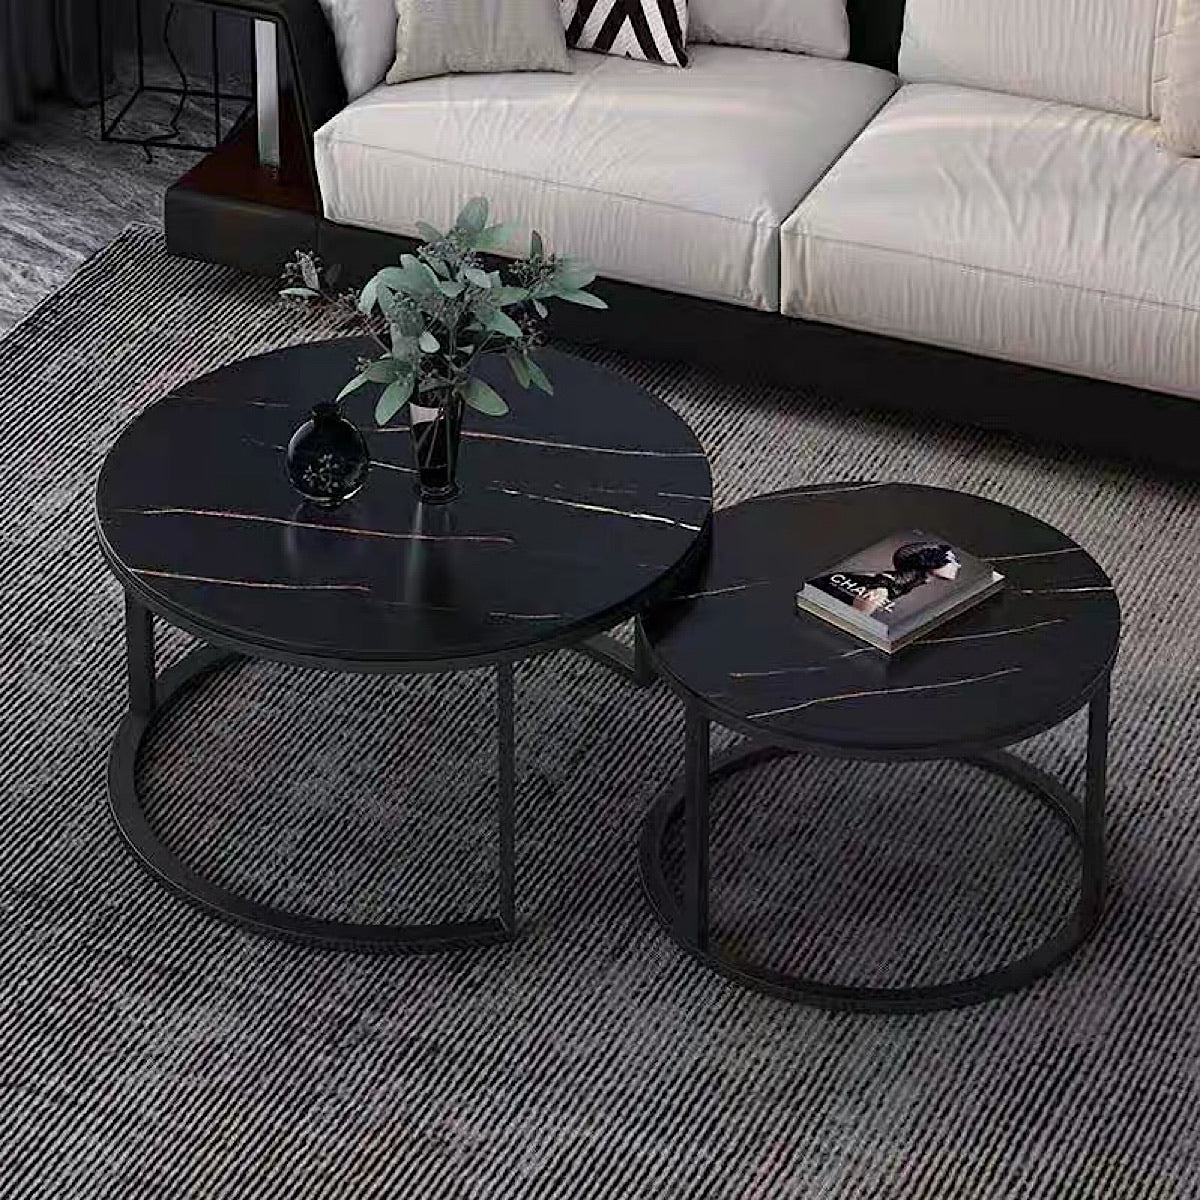 Dex Coffee Table - mhomefurniture